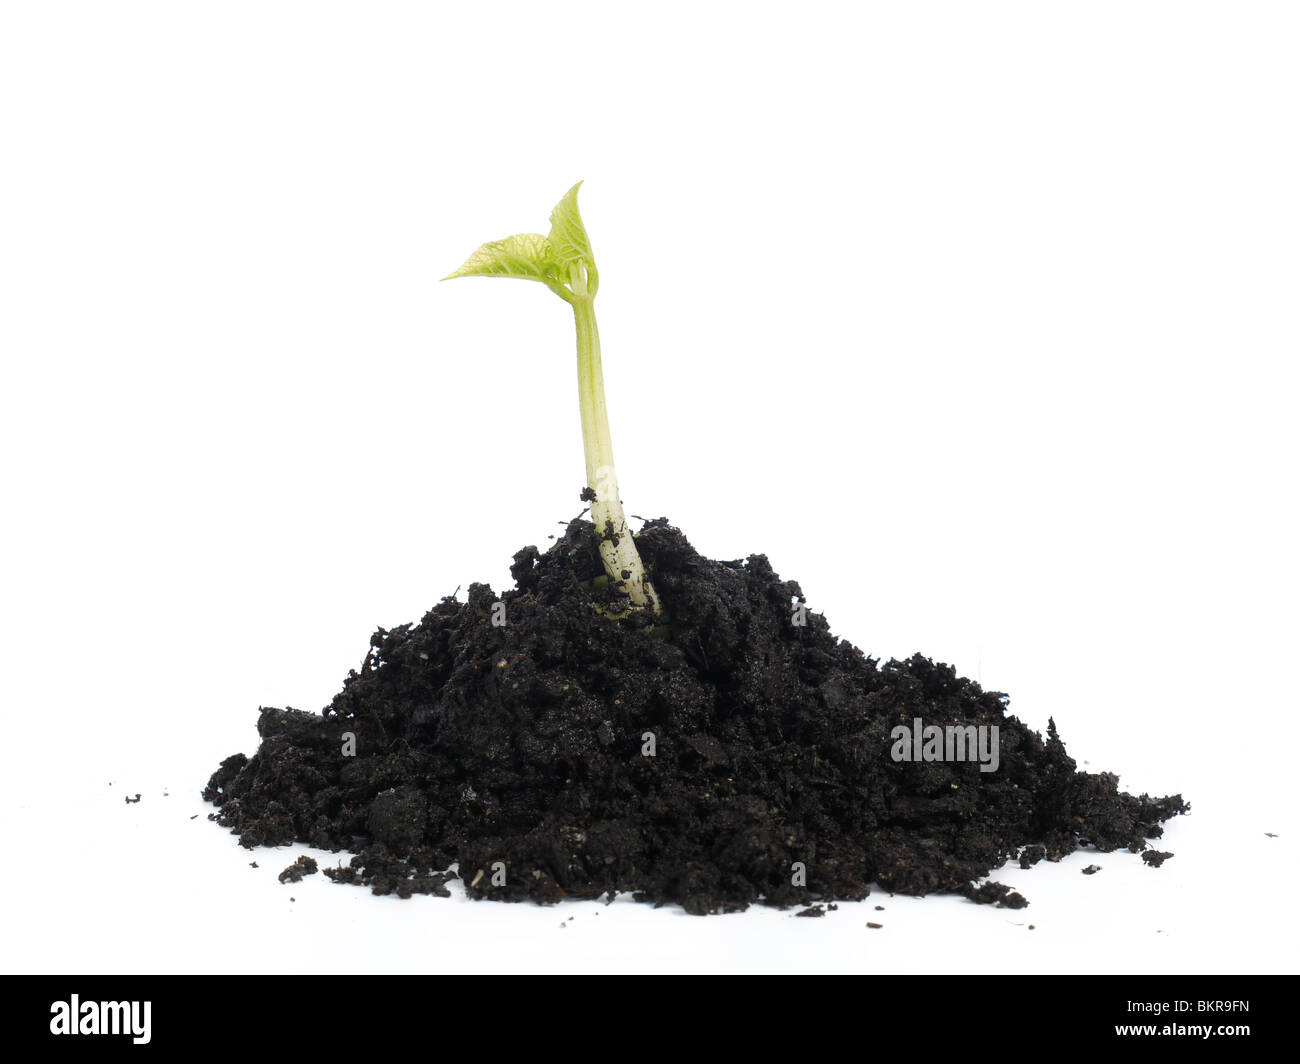 Young bean sprout growing on soil hump - shot over white background - Stock Image